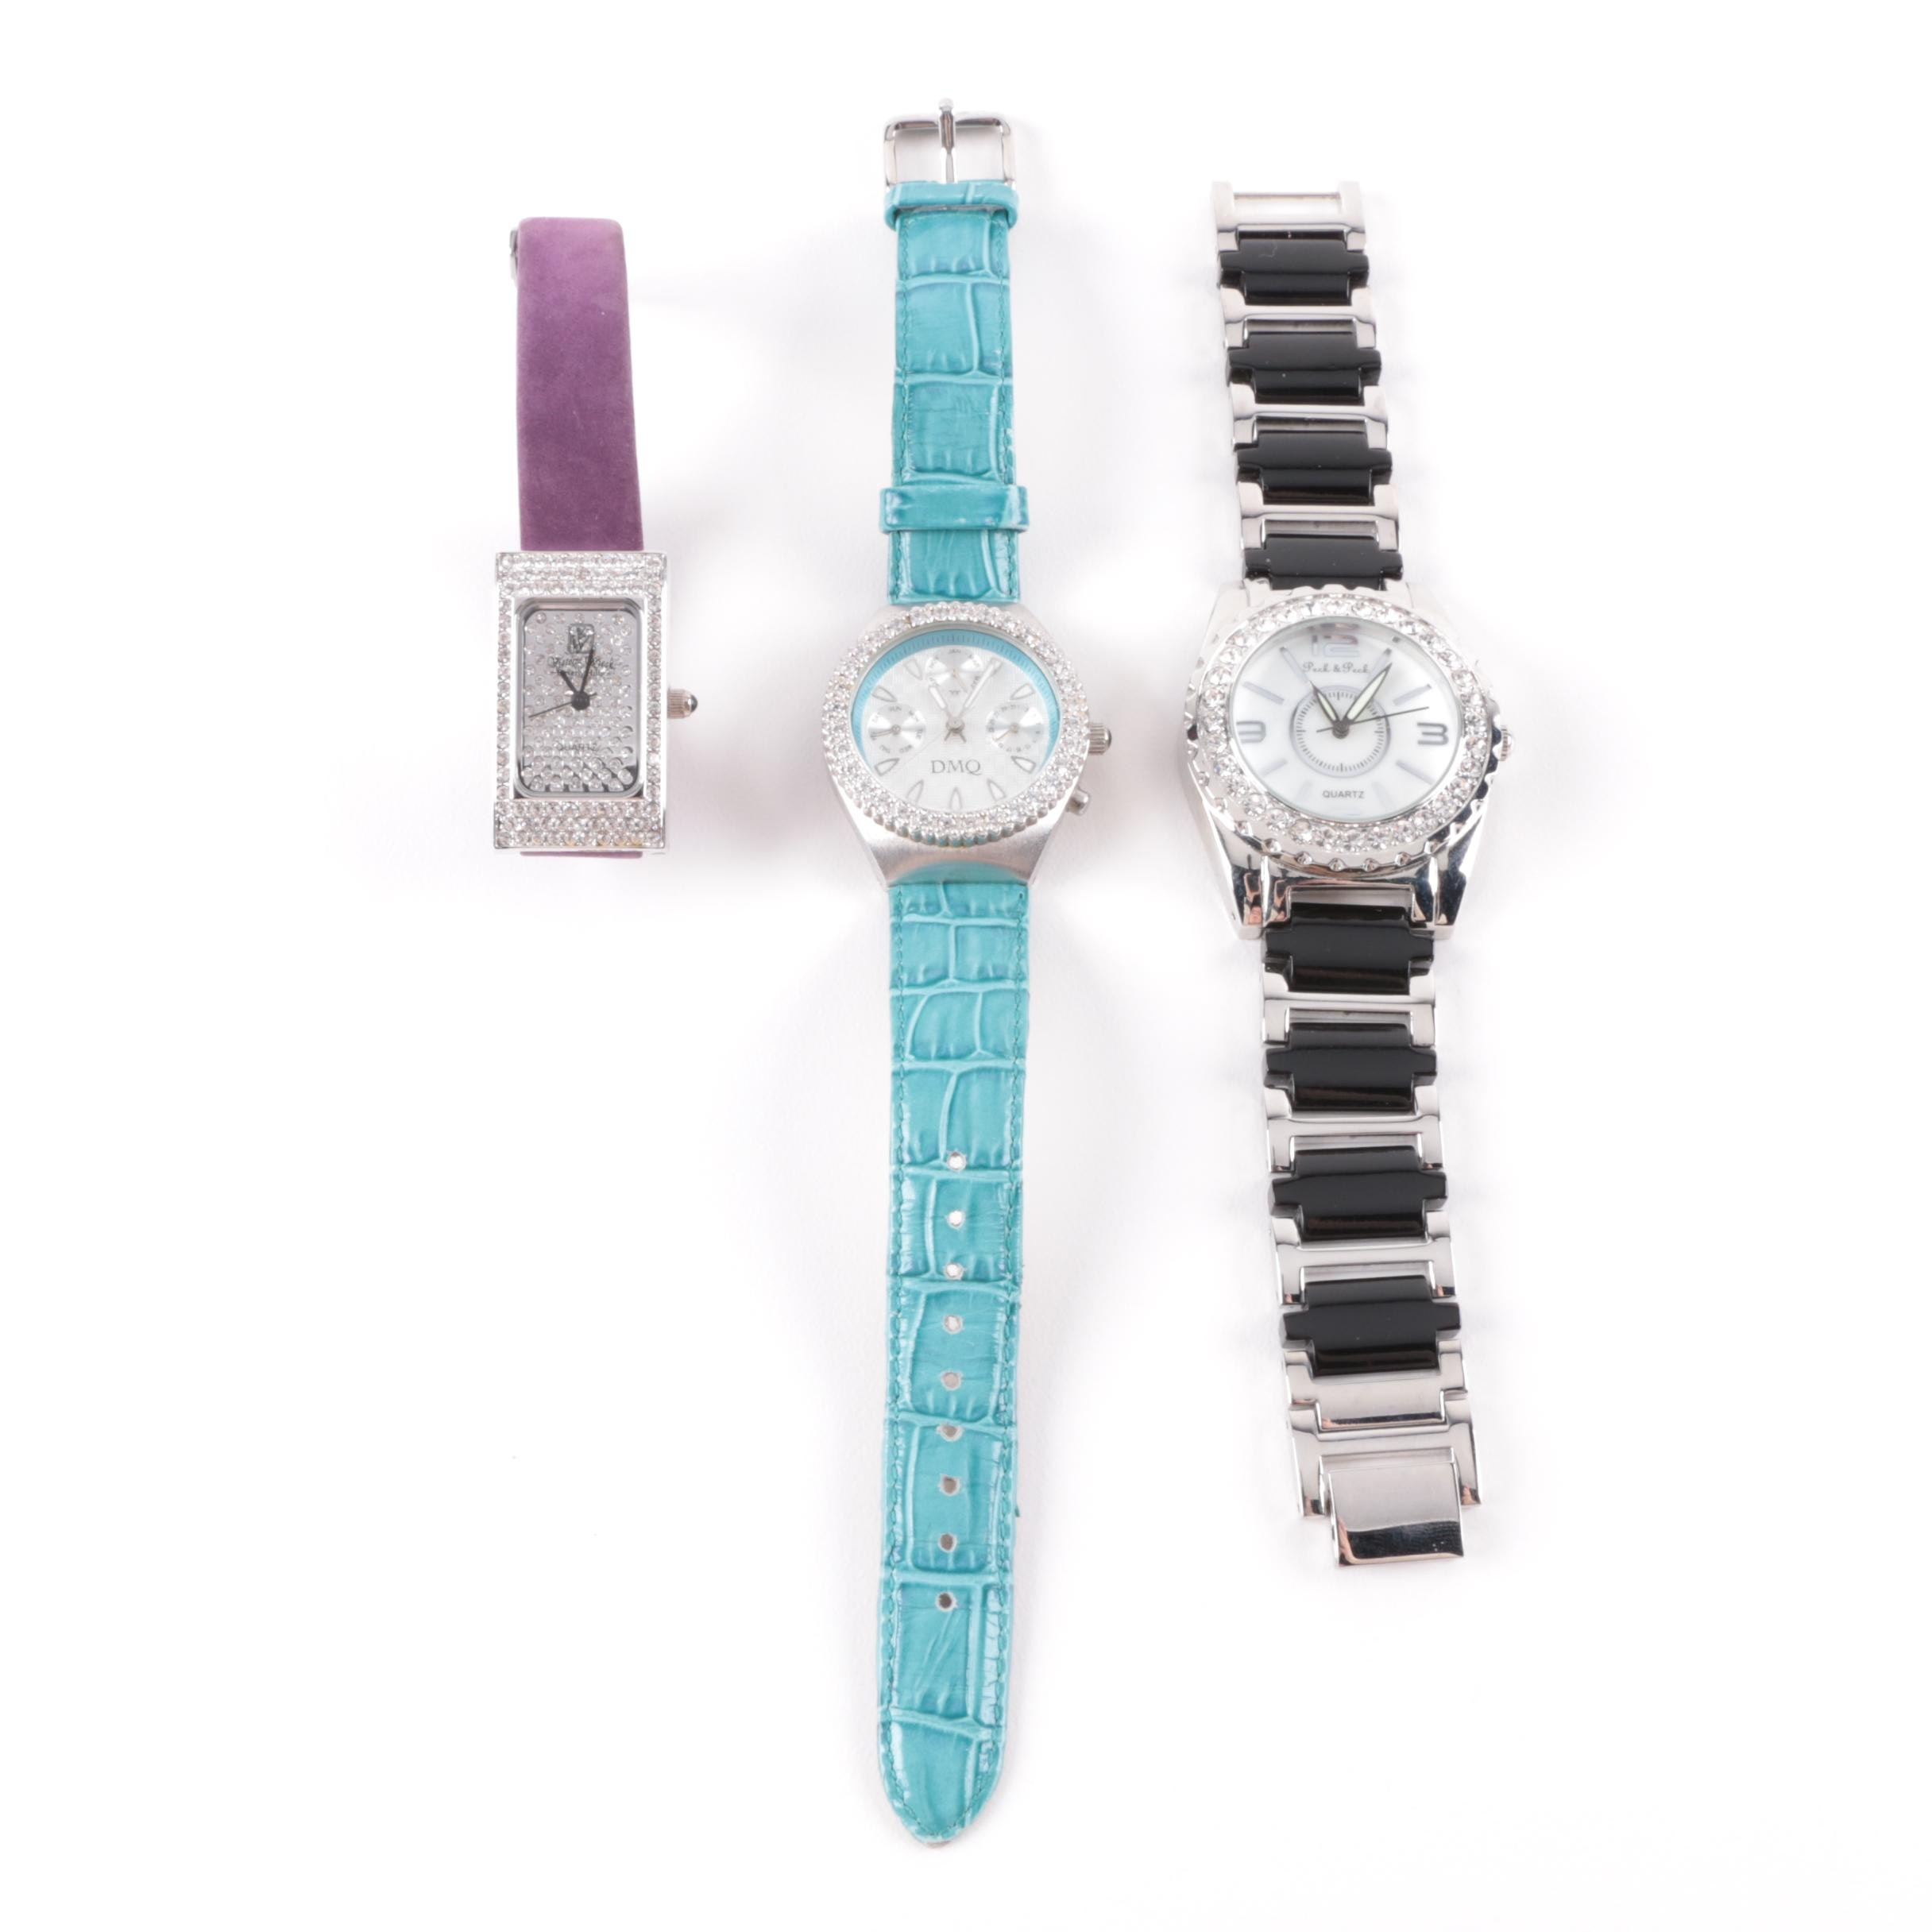 Costume Wristwatches Including Victoria Wieck